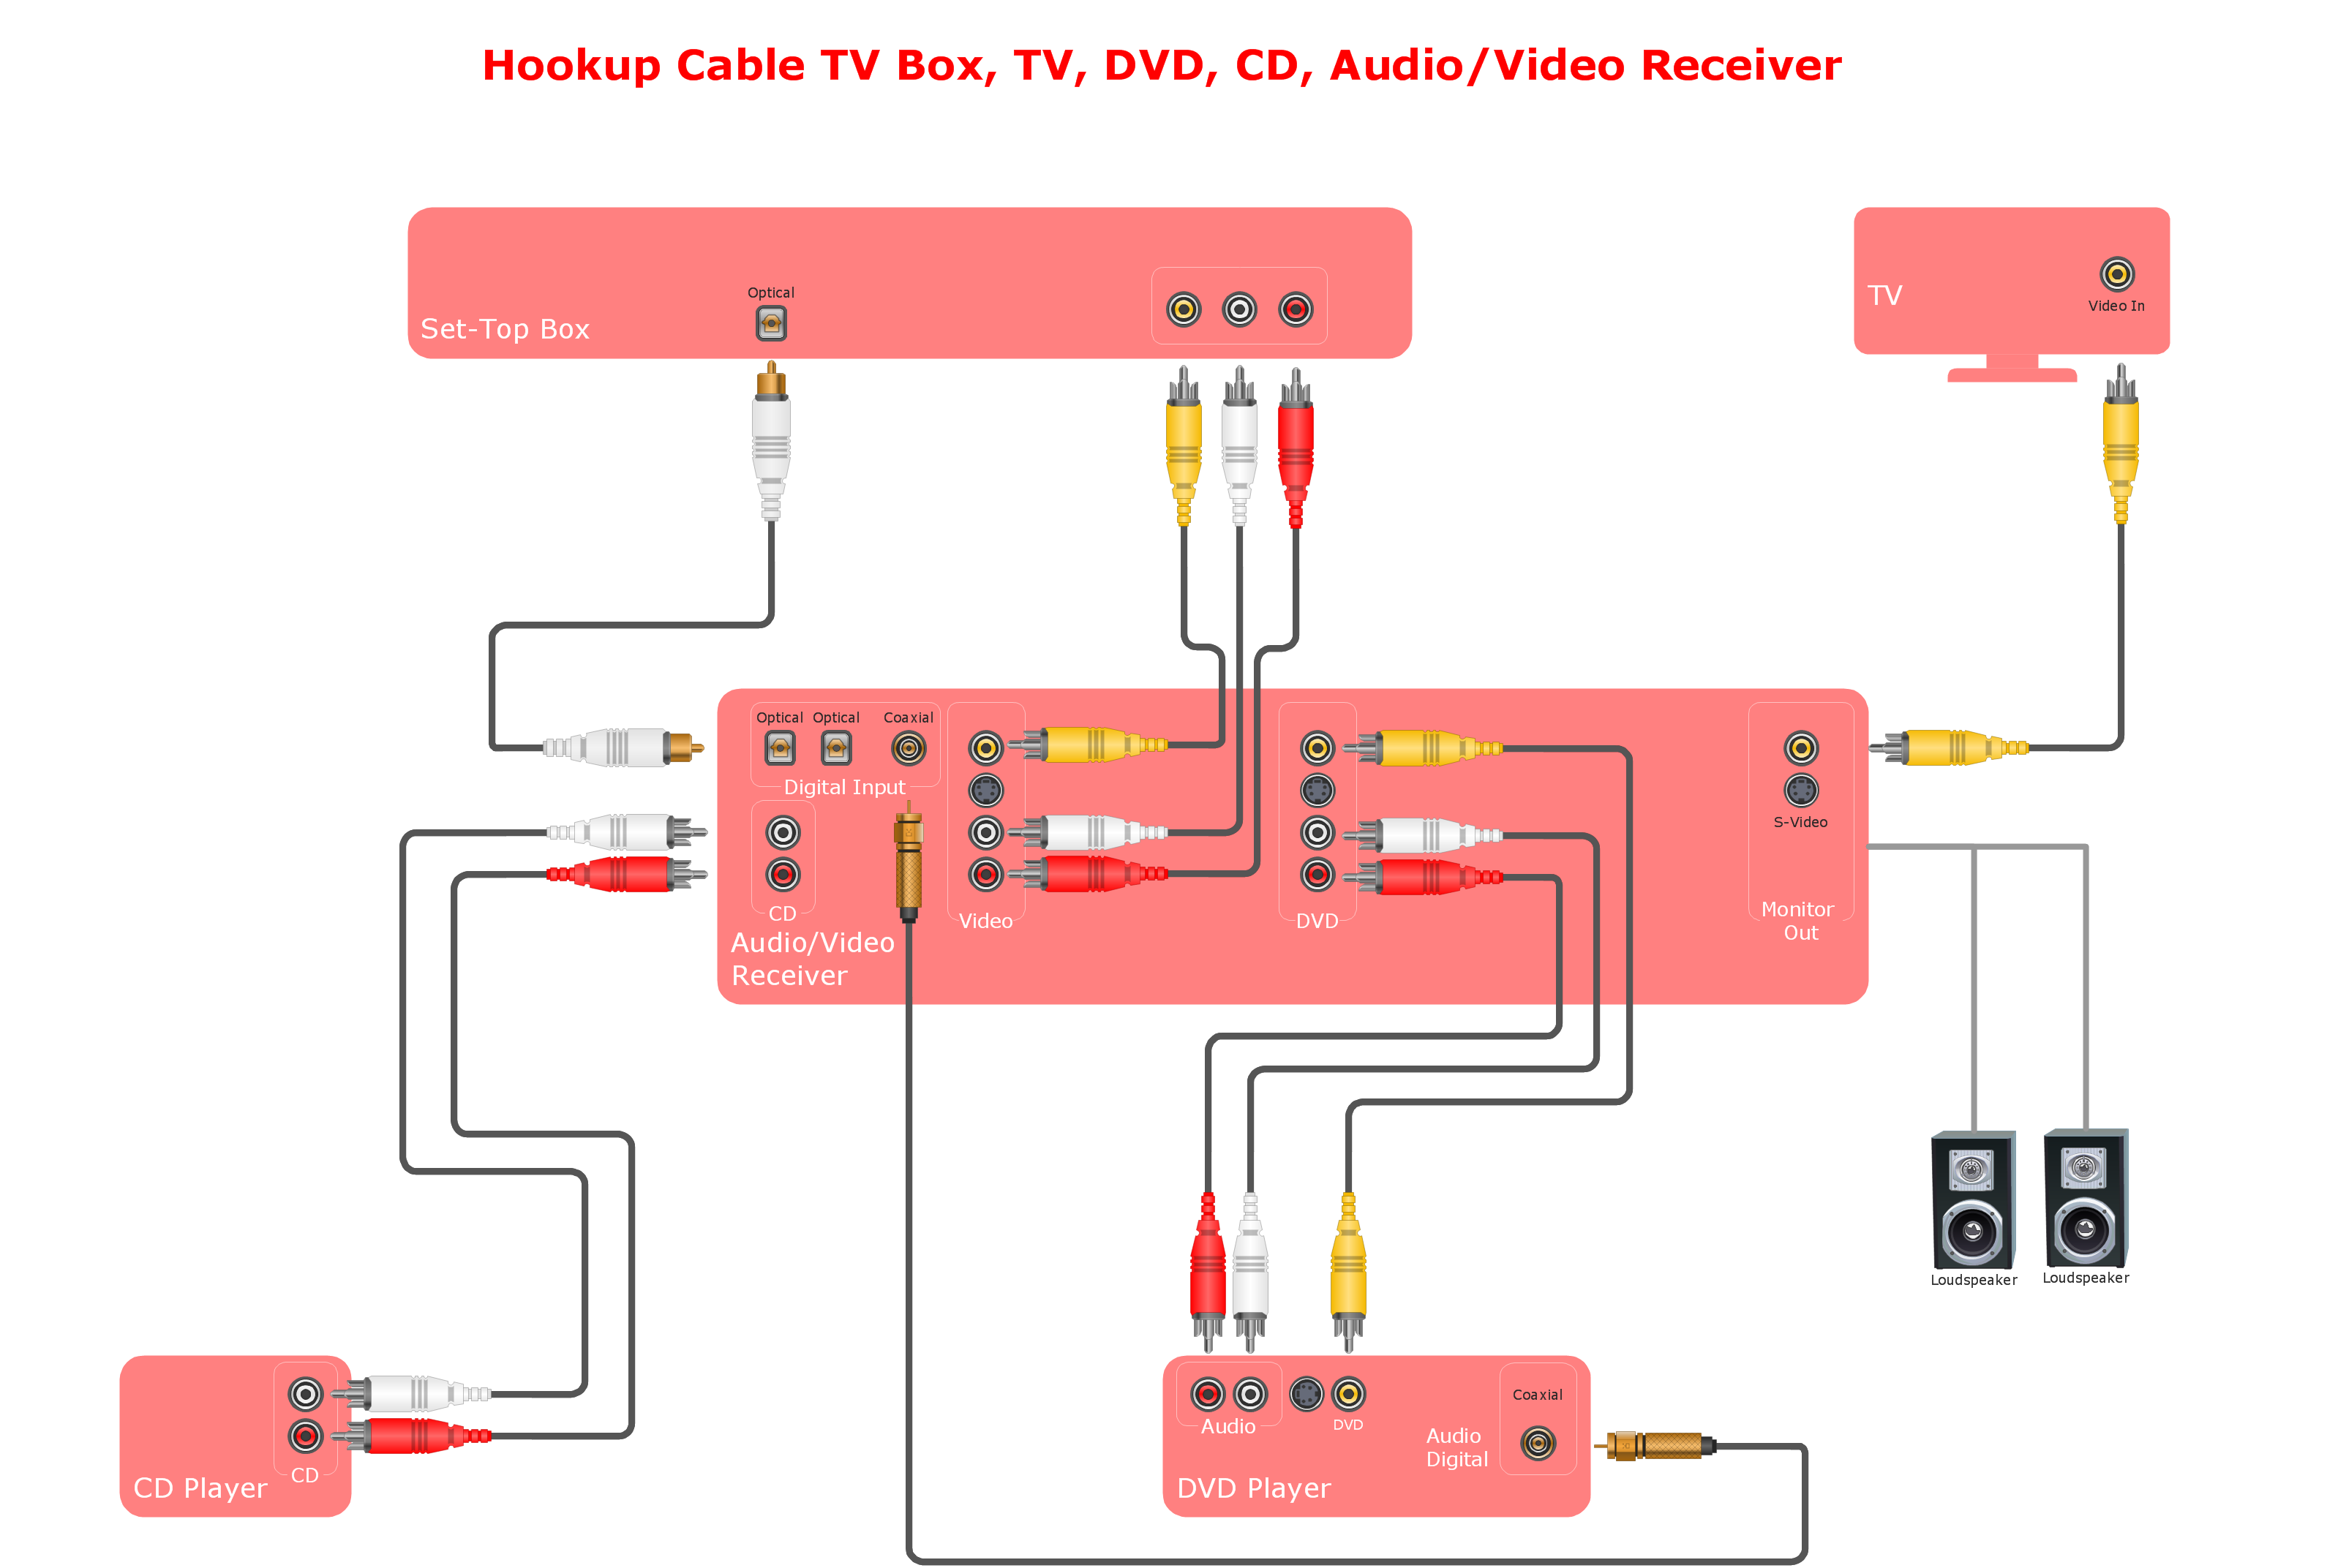 Hook-up drawing - Stereo audio visual entertainment systems